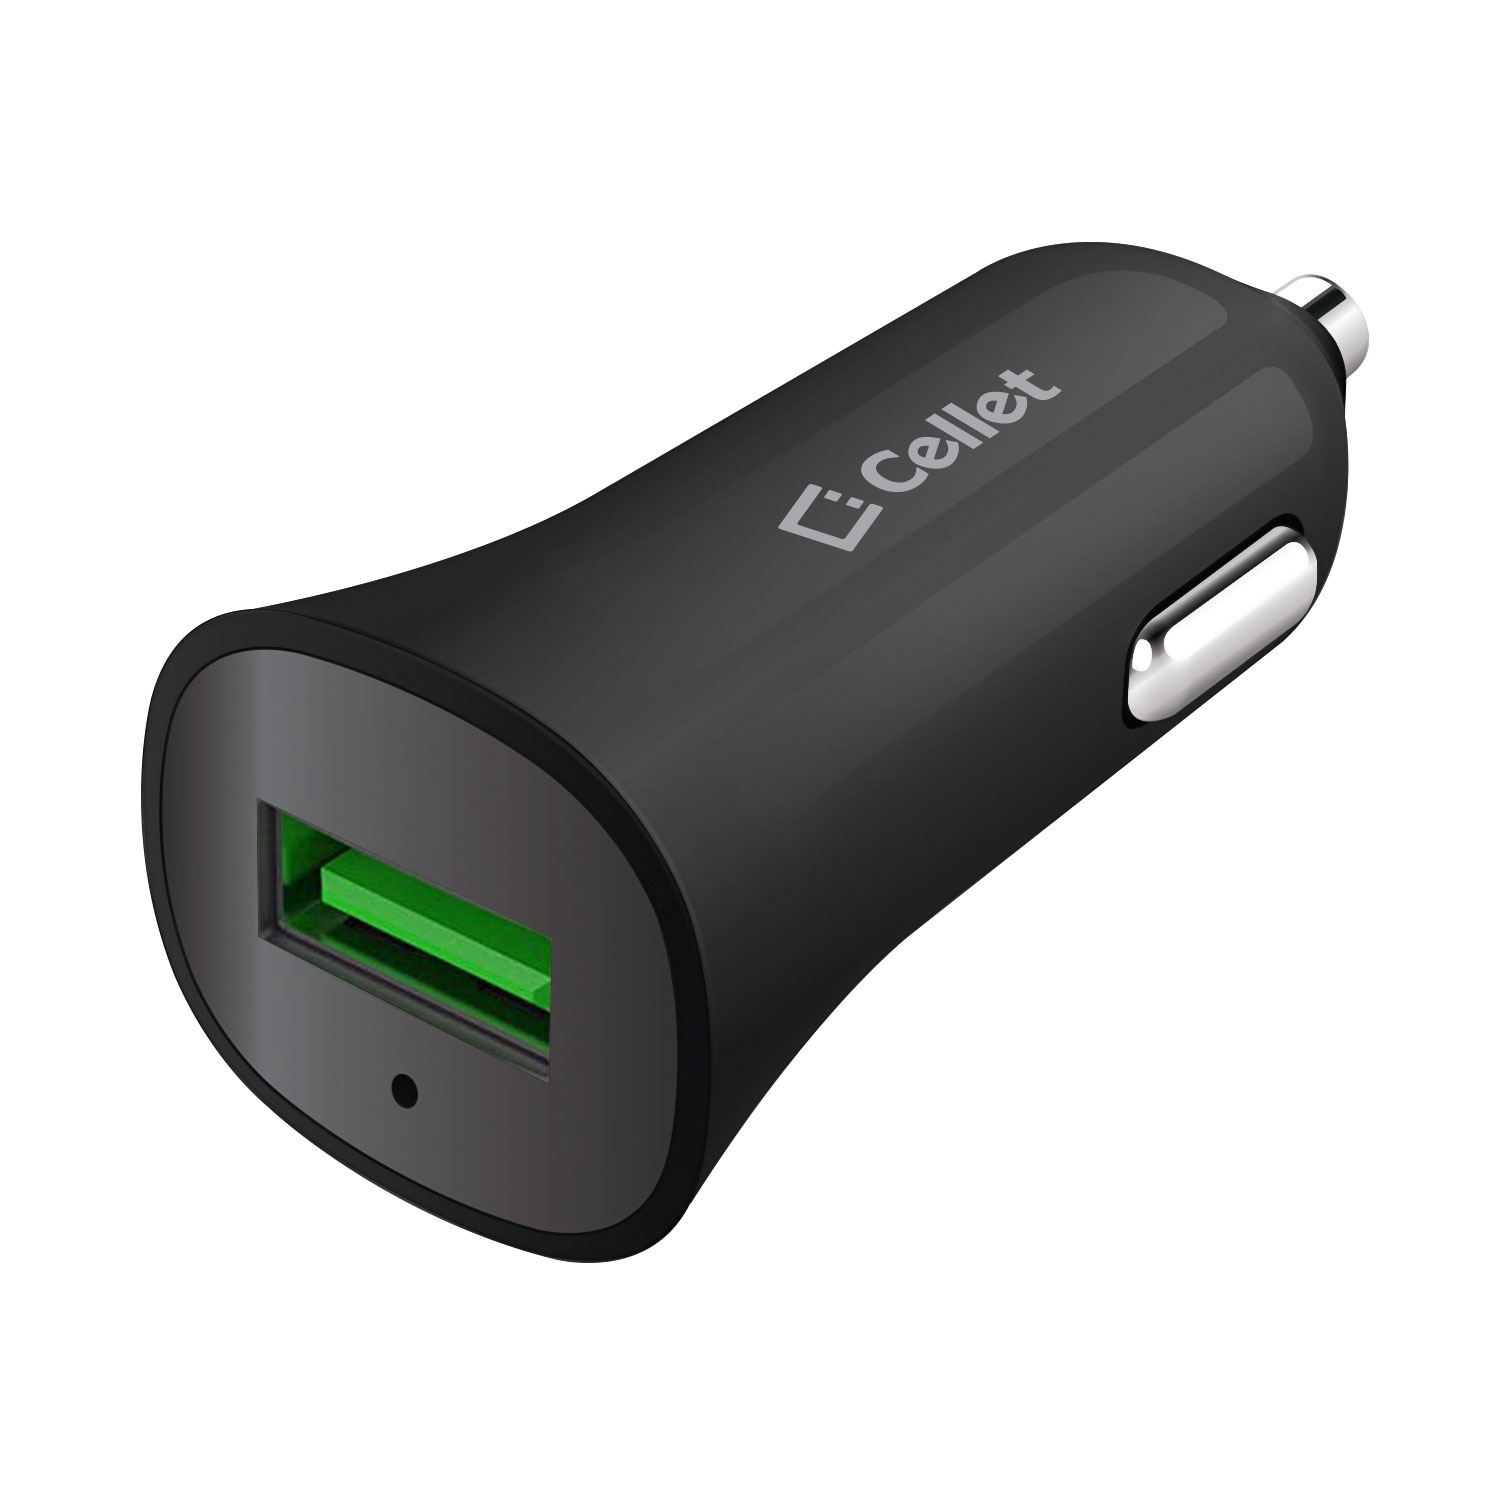 Samsung Galaxy S10e Car Charger Quick Charge 3.0 Black 3.3ft